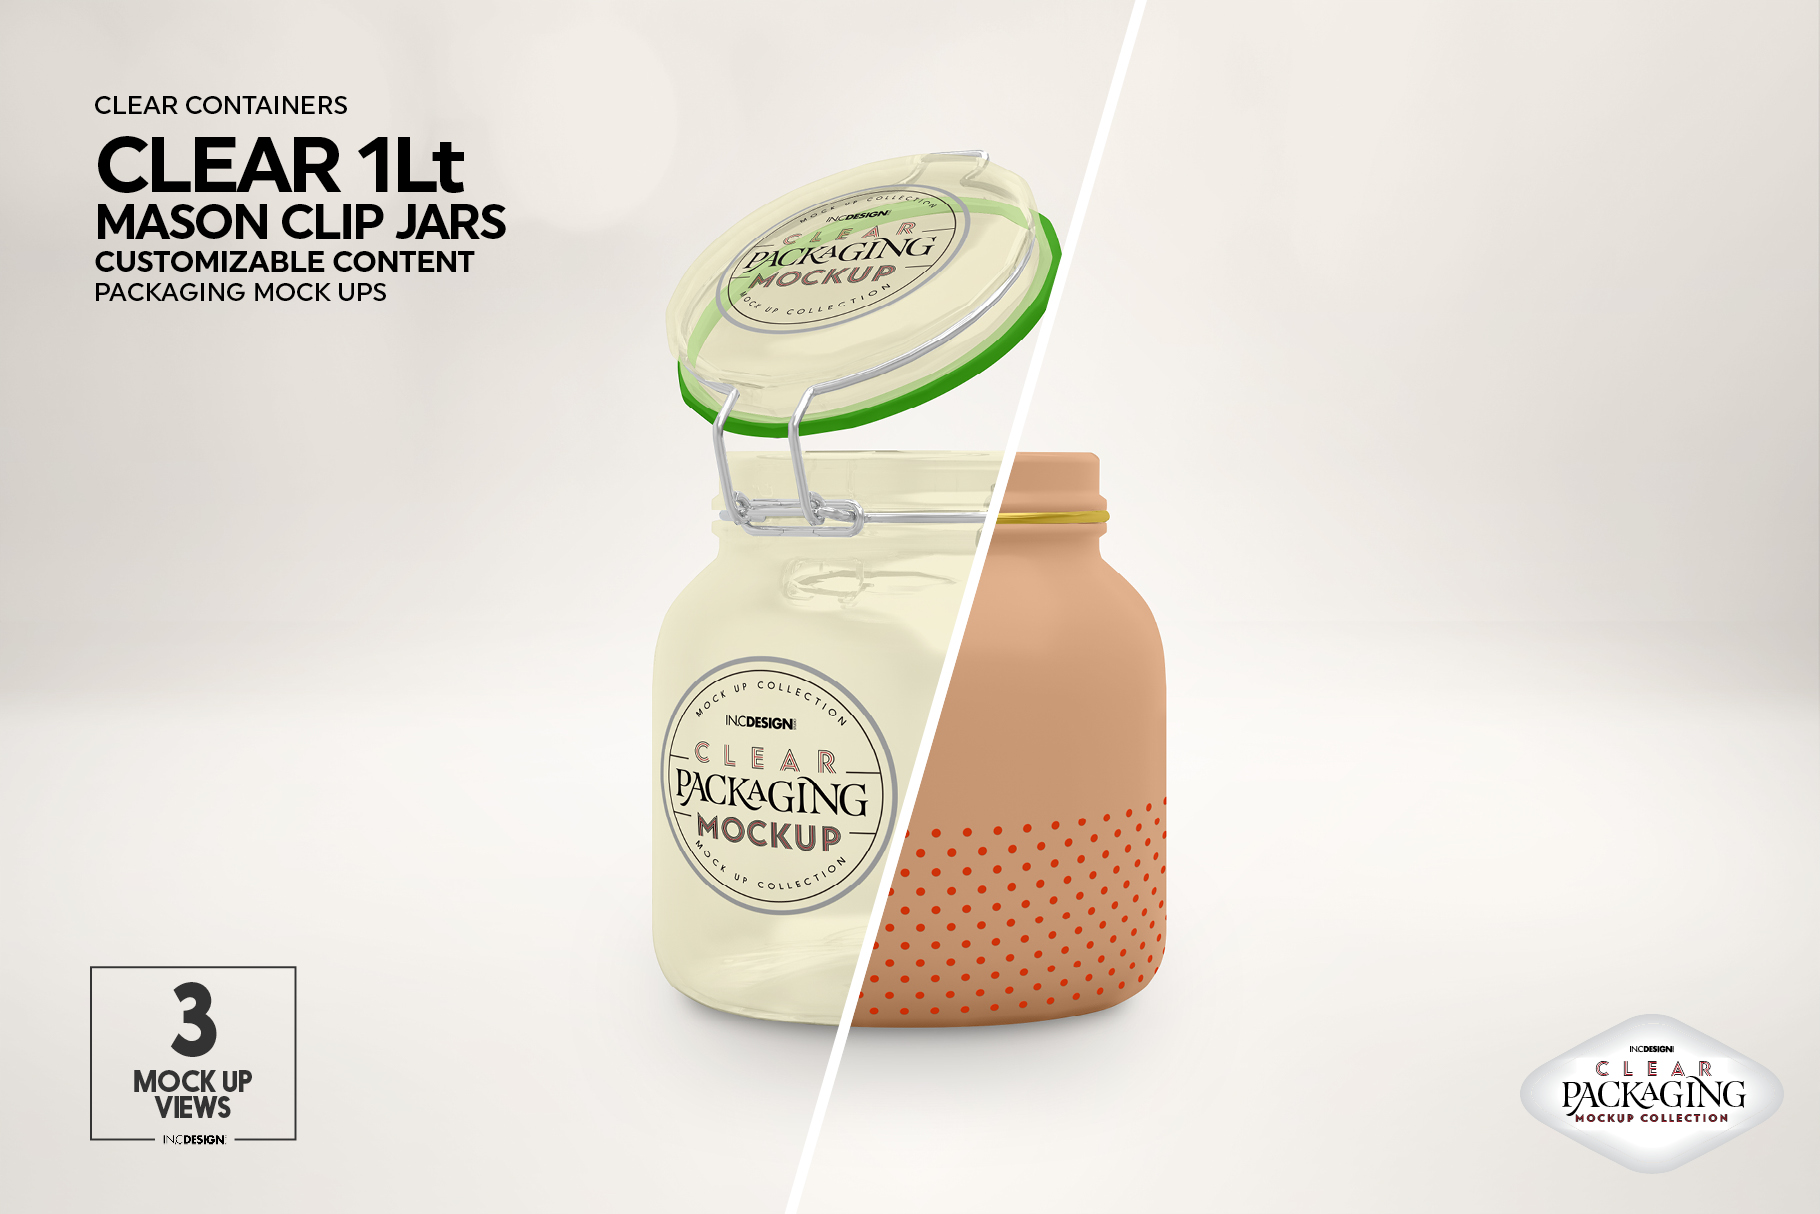 Clear 1Liter Mason Clip Jar Packaging Mockup example image 6